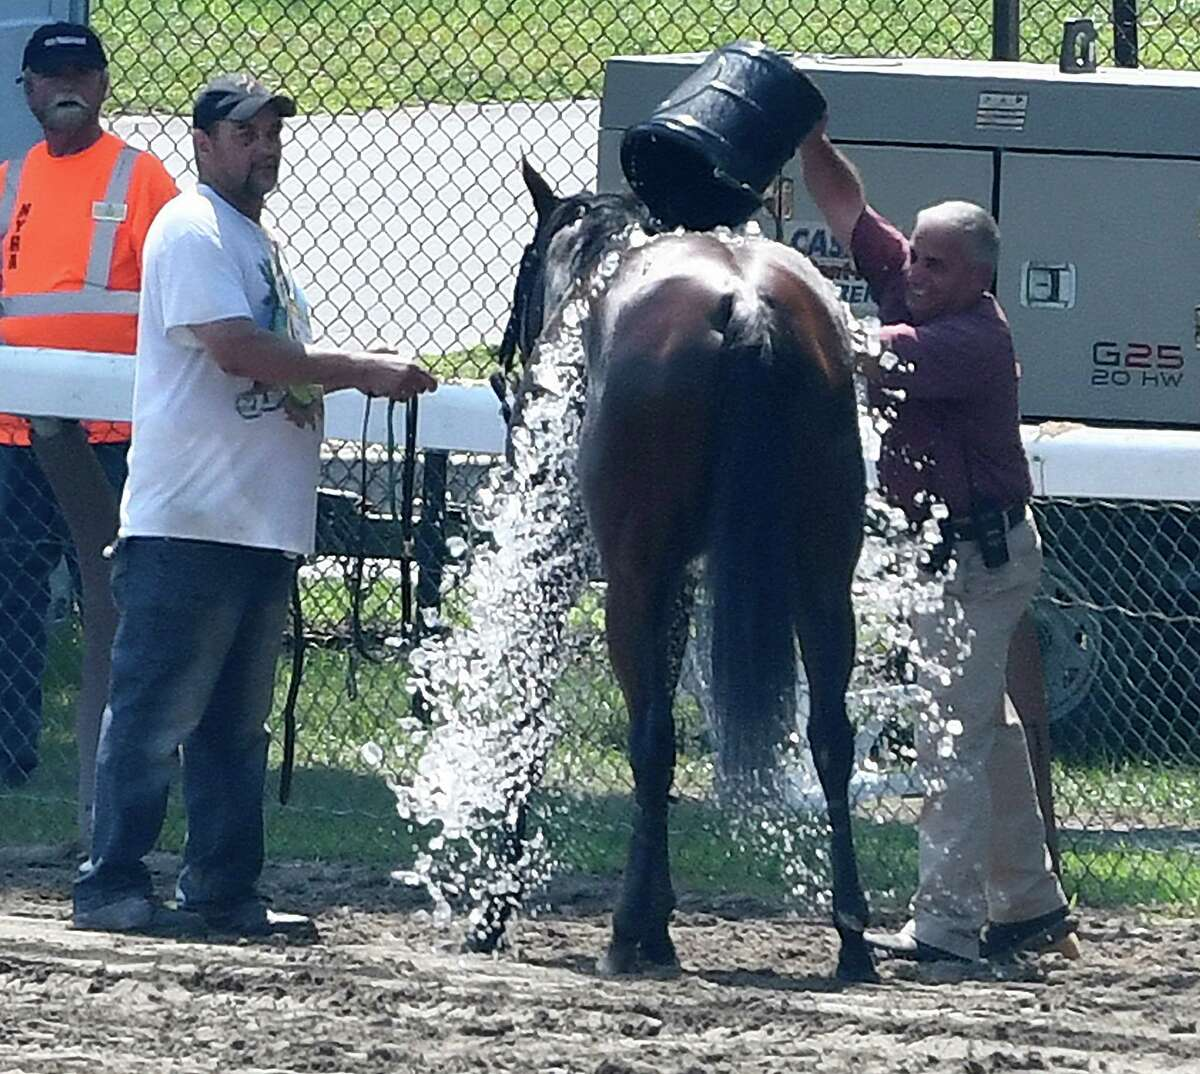 Dr. Anthony Verderosa, chief examining veterinarian for NYRA, right, gives a race competitor an ice bath after the second race on the card at the Saratoga Race Course Thursday Aug. 11, 2016 in Saratoga Springs, N.Y. (Skip Dickstein/Times Union)